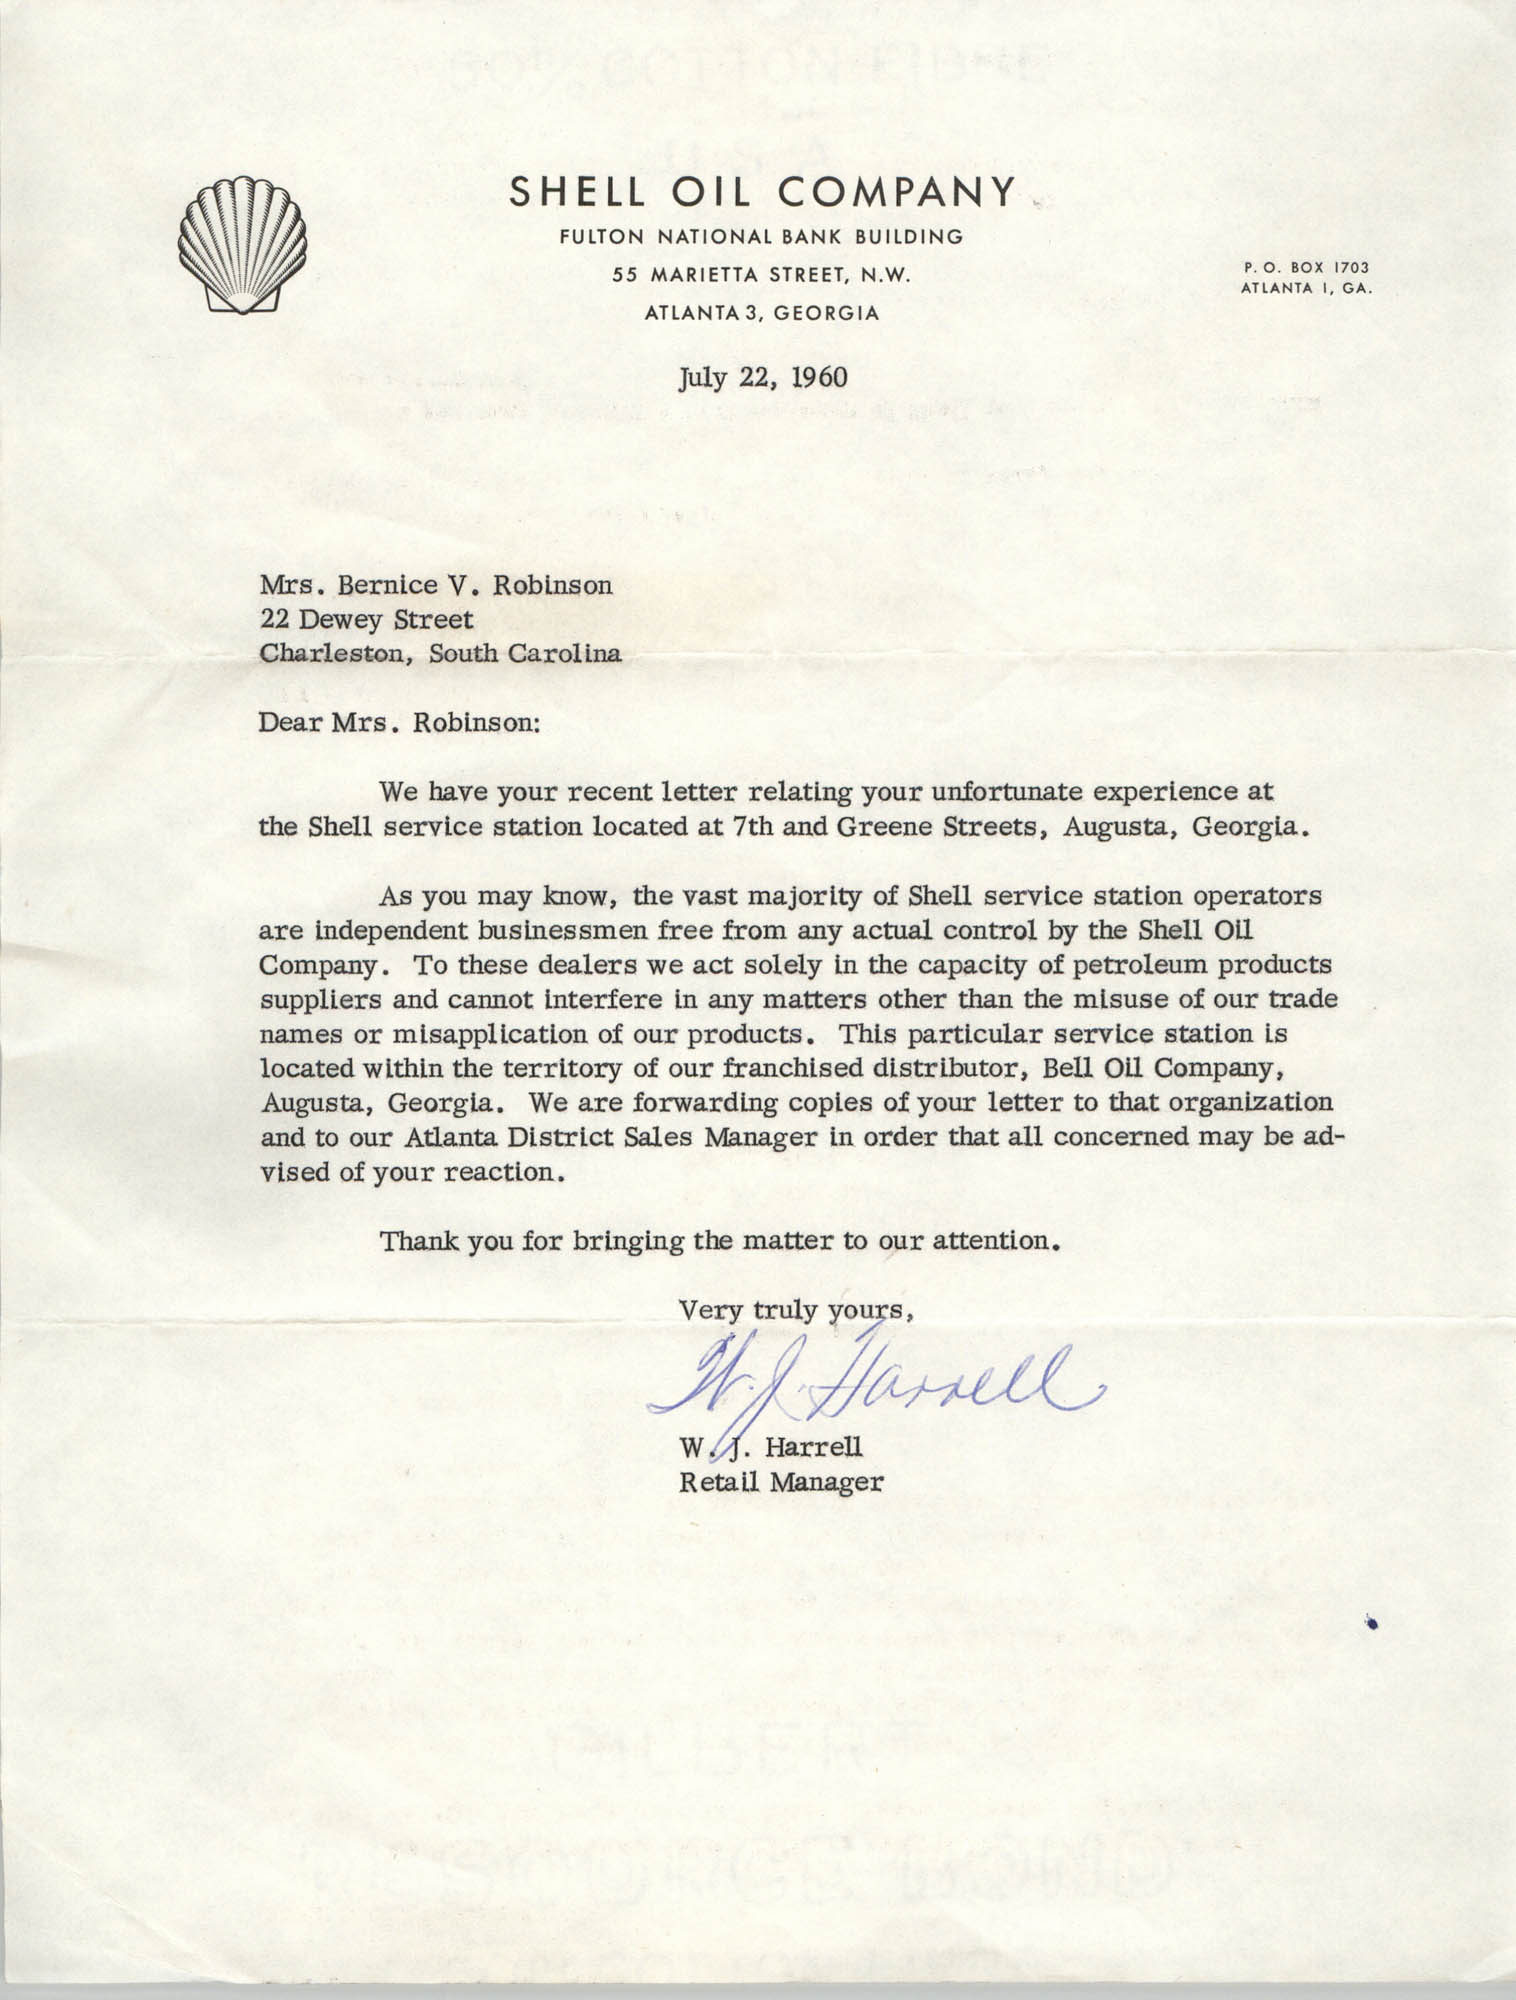 Letter from W. J. Harrell to Bernice V. Robinson, July 22, 1960